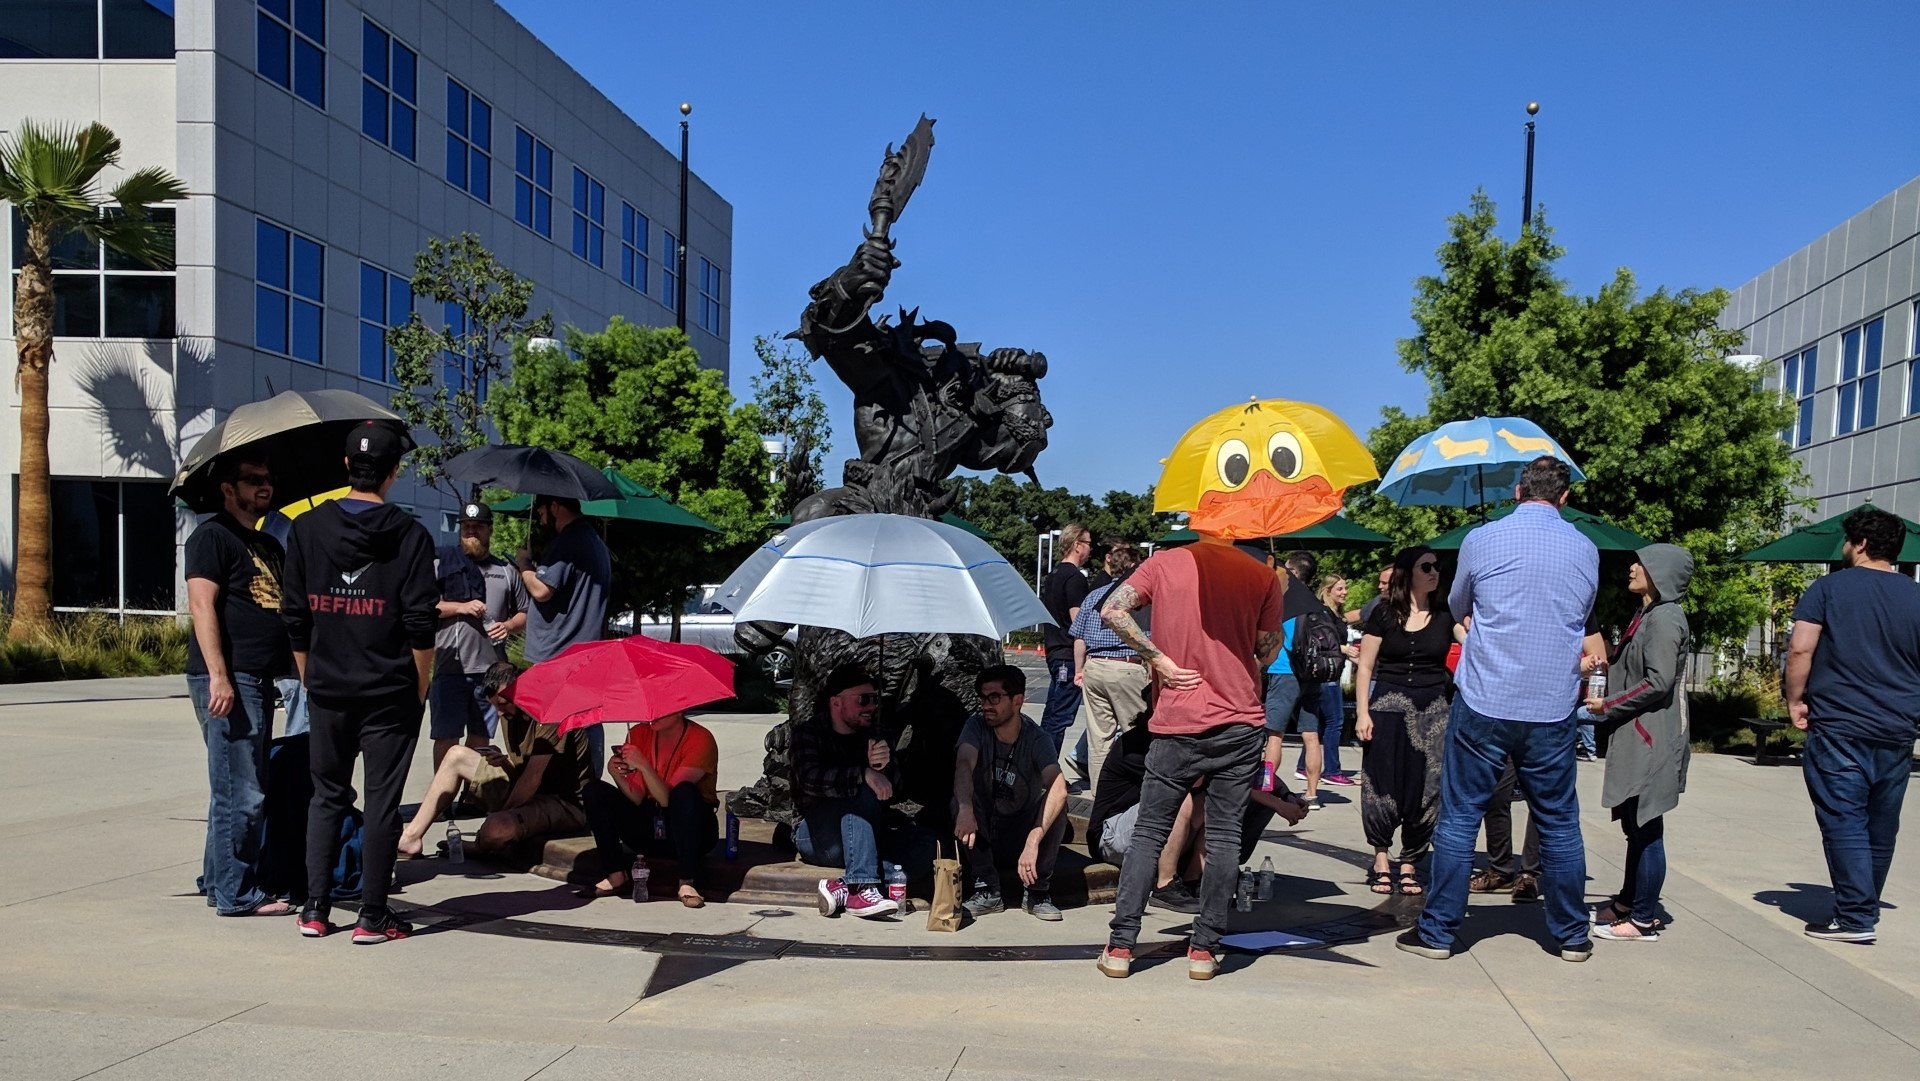 Employees at Activision Blizzard held a walkout for equality